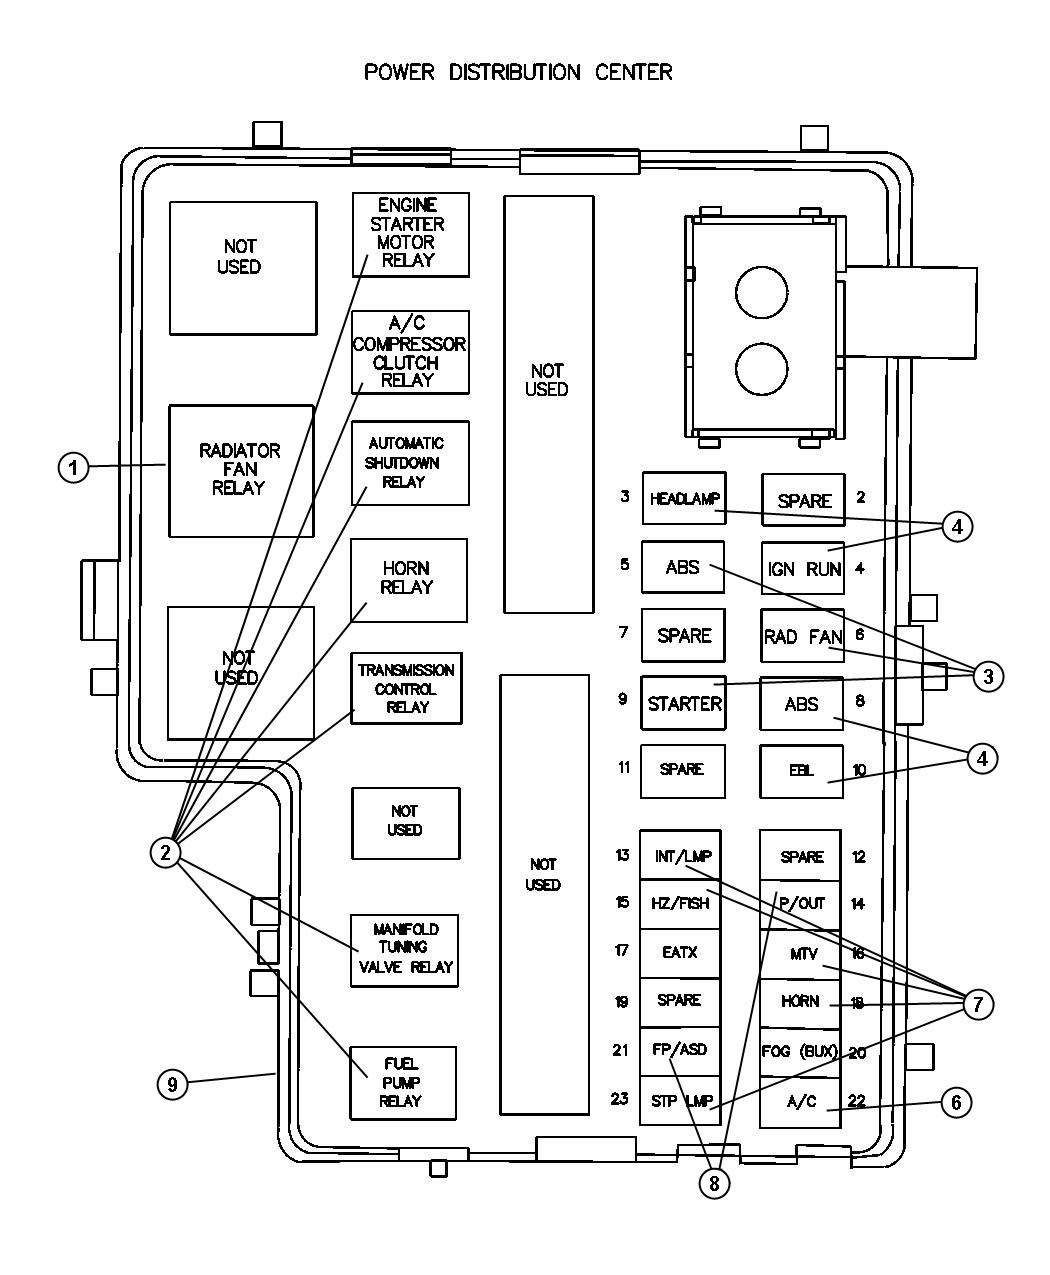 34 Mack Truck Fuse Box Diagram - Wiring Diagram Database | 2007 Volvo Truck Fuse Panel Diagram Wiring Schematic |  | Wiring Diagram Database